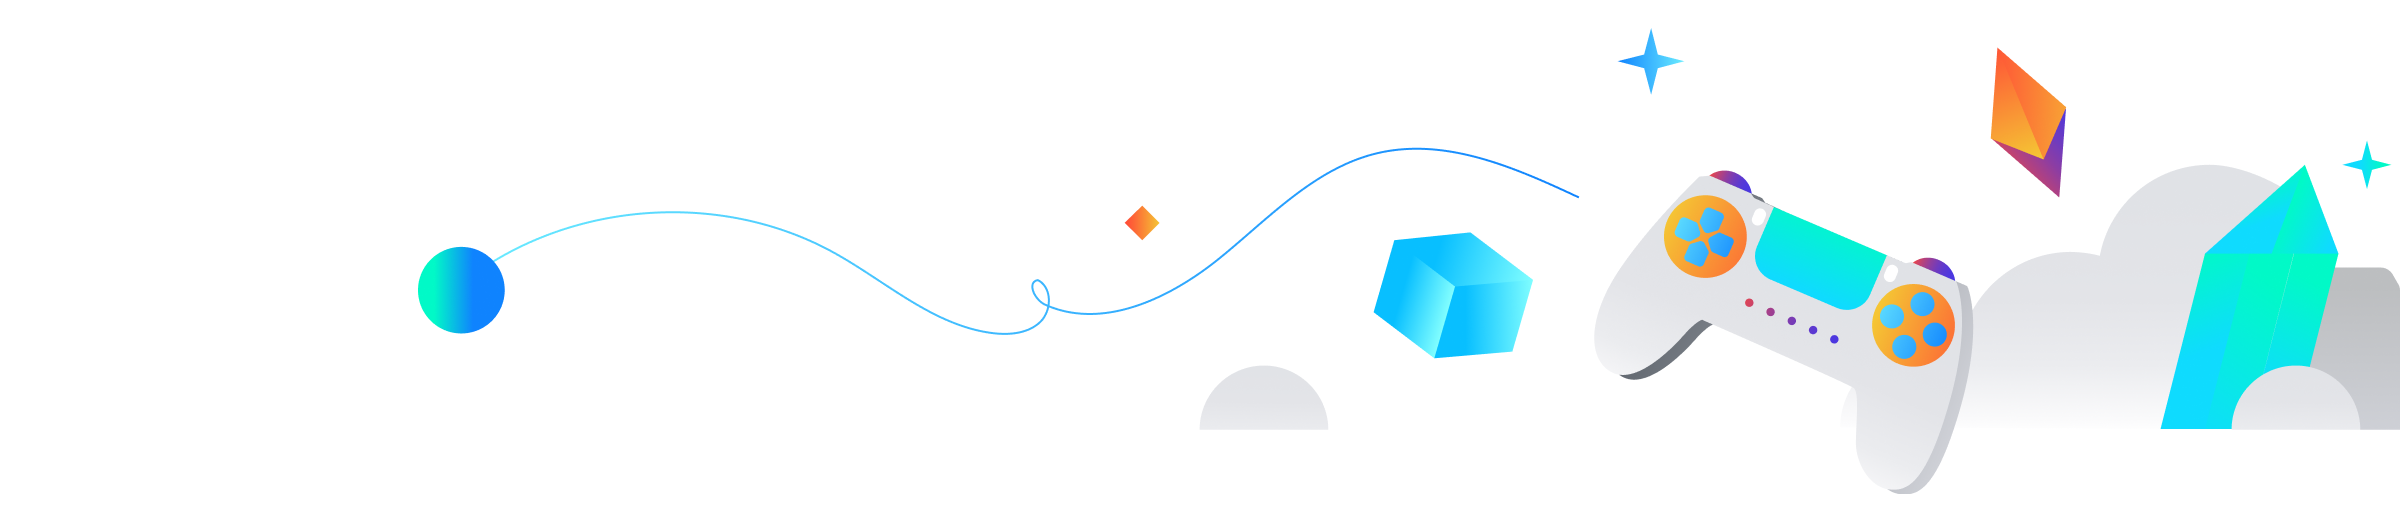 Google Cloud in Gaming ilustration